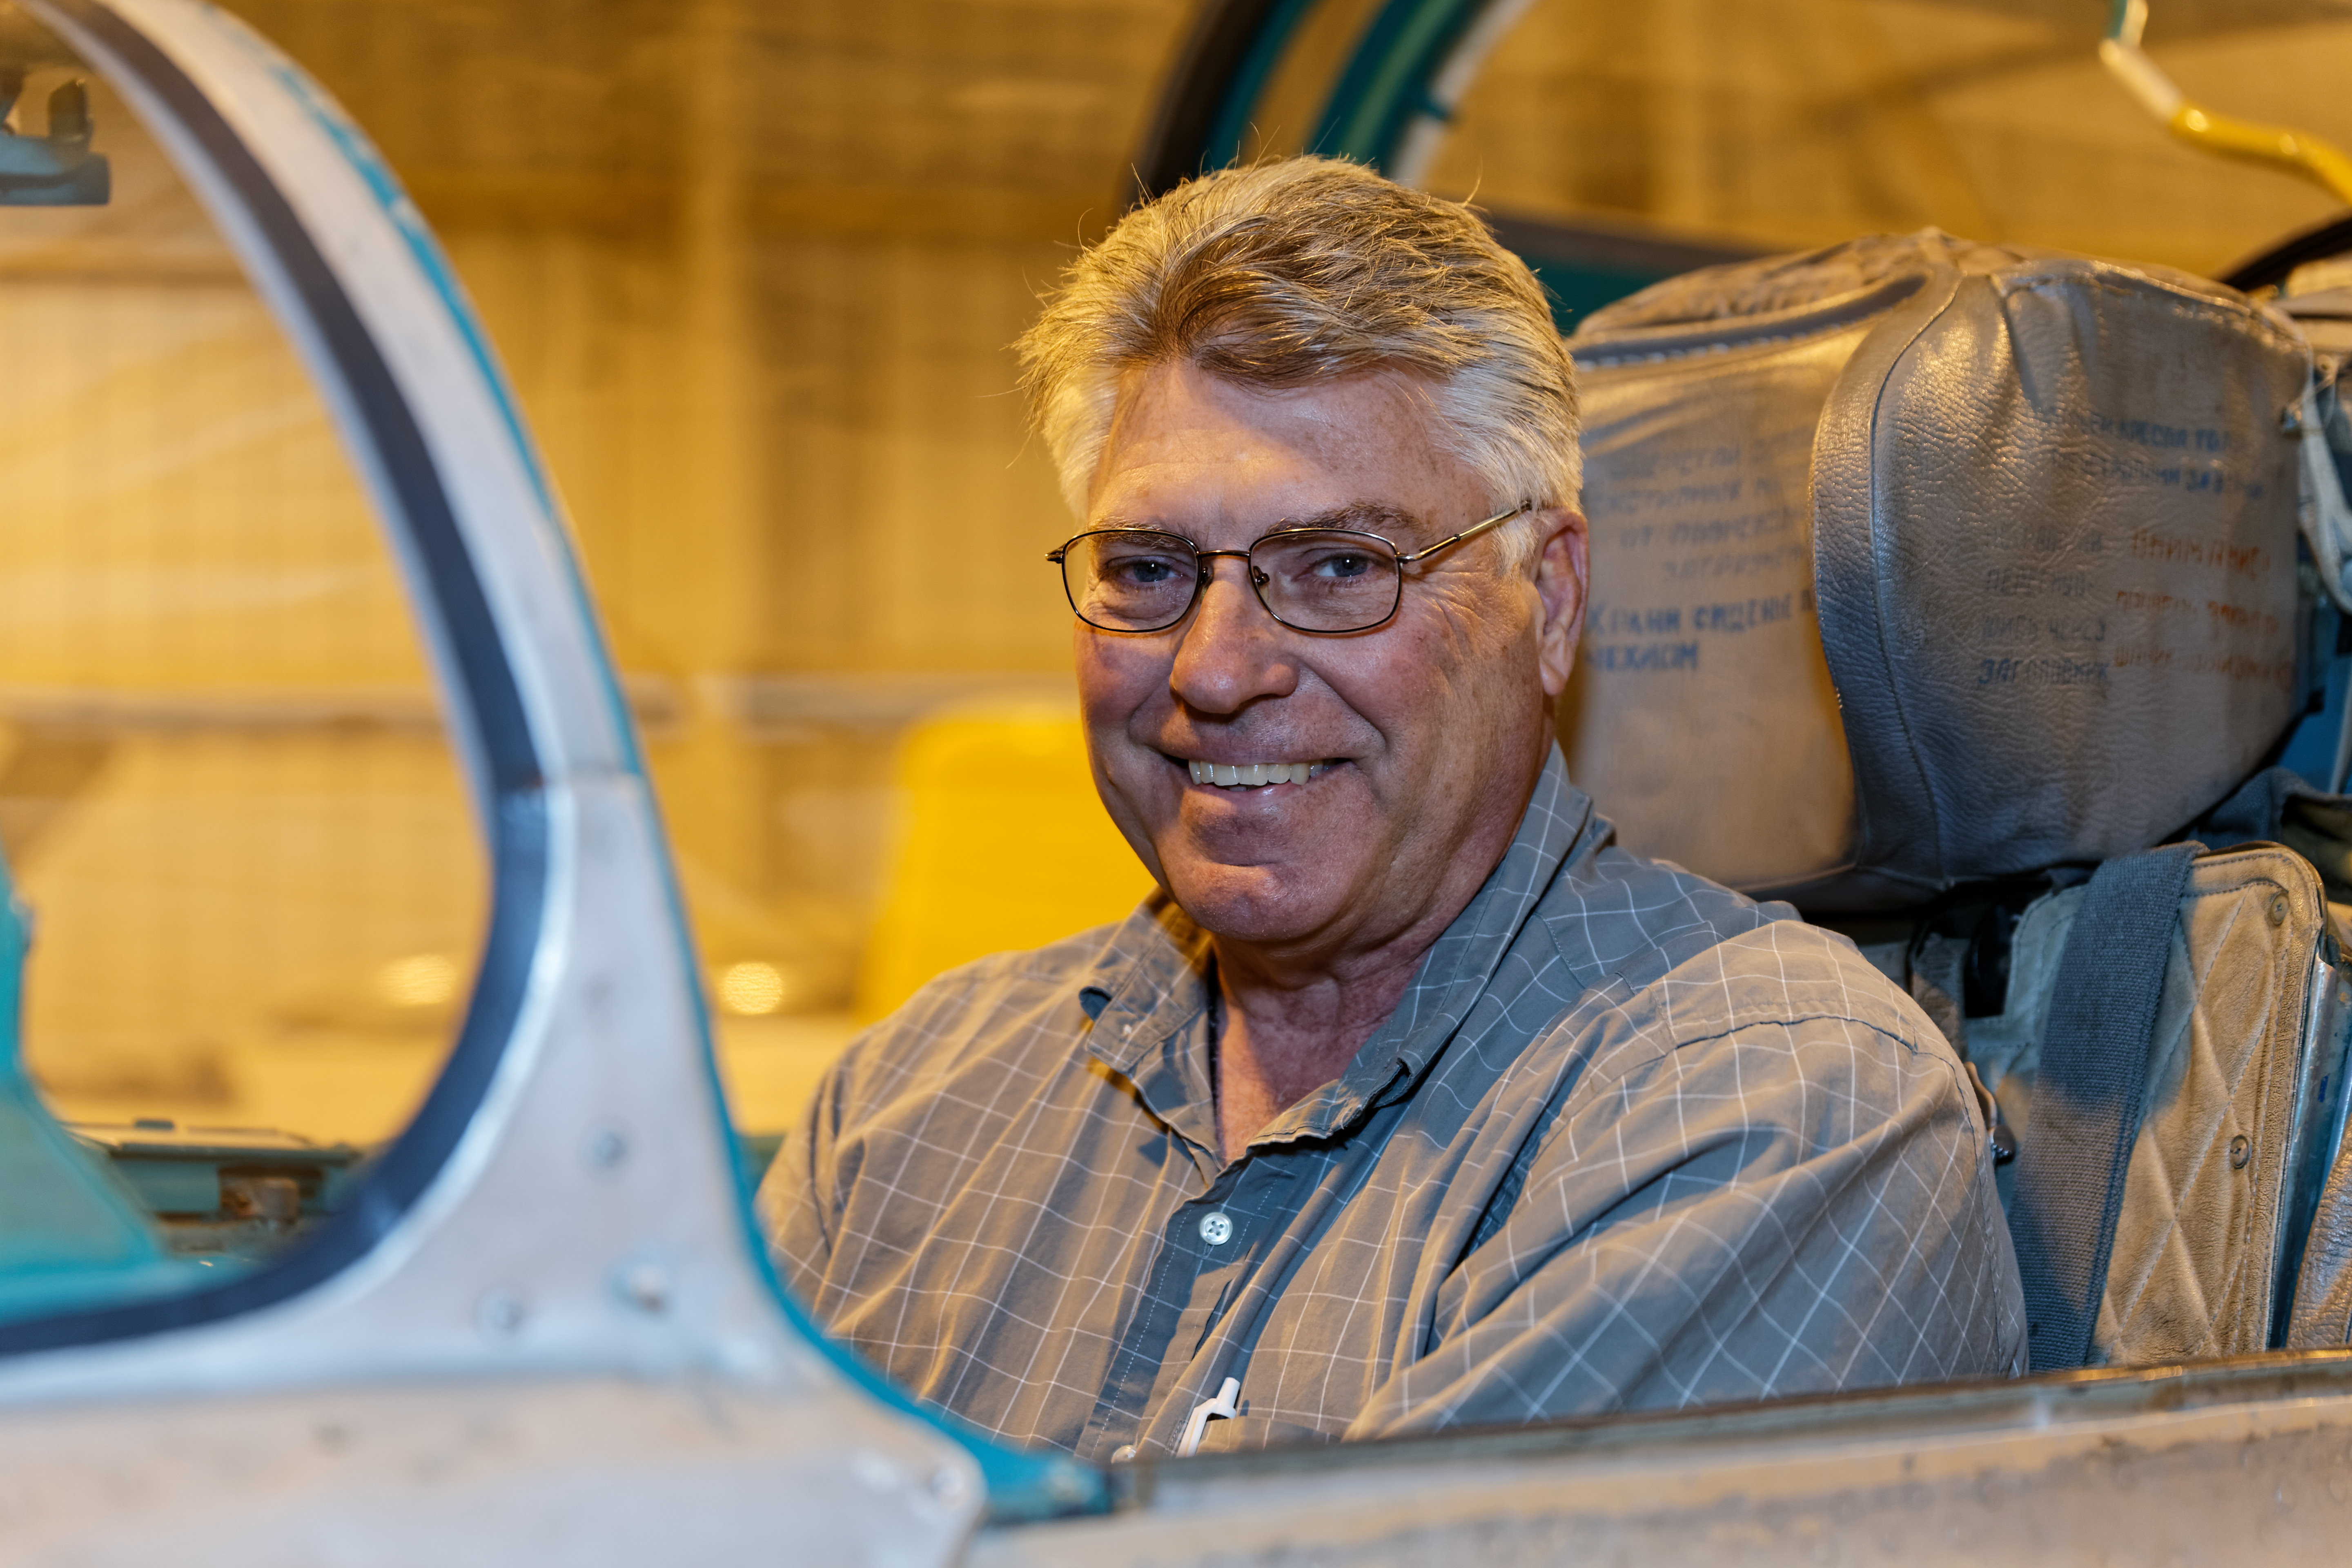 Pilot Rick Sharpe, smiling from the cockpit of his MiG-21.